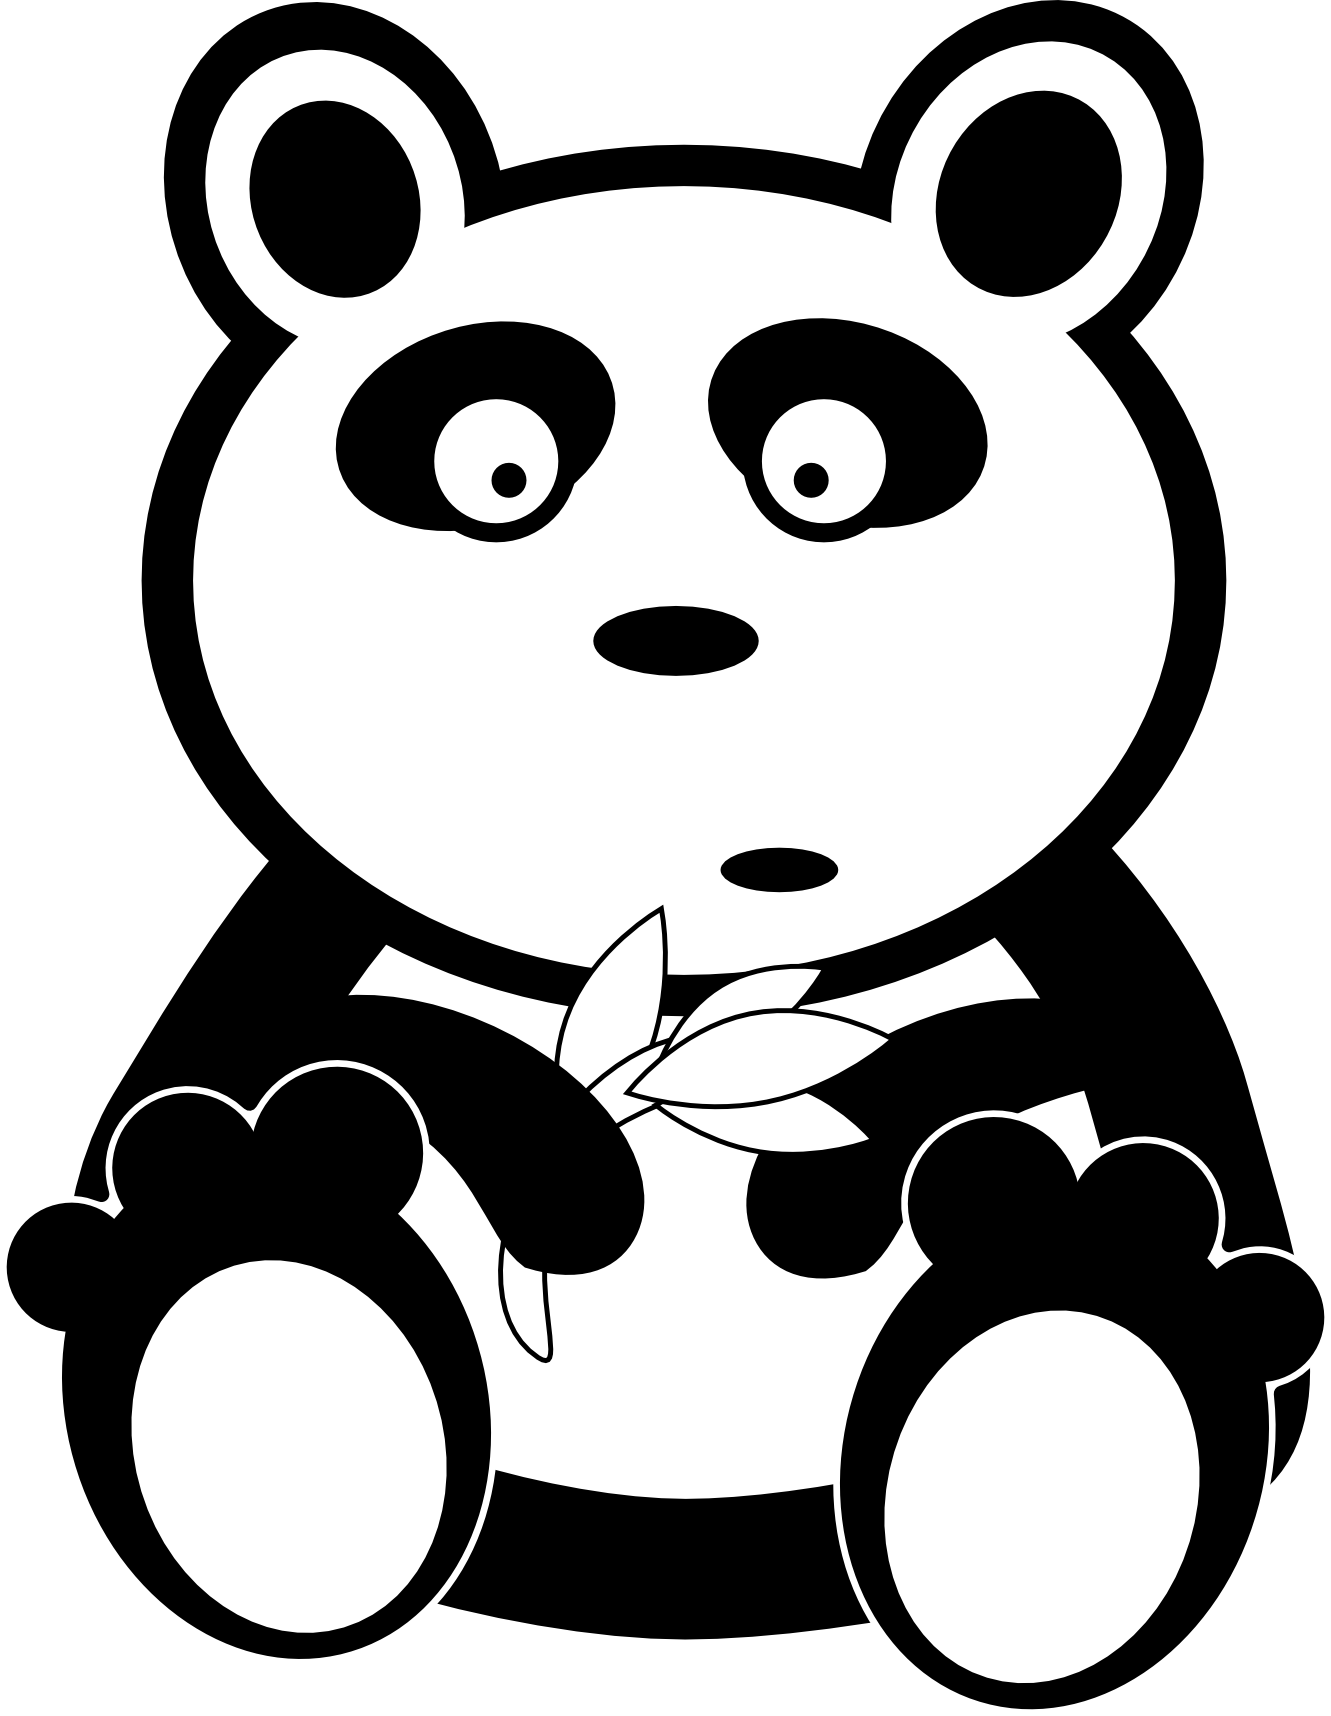 Bear Clipart Black And White | Clipart Panda - Free ...